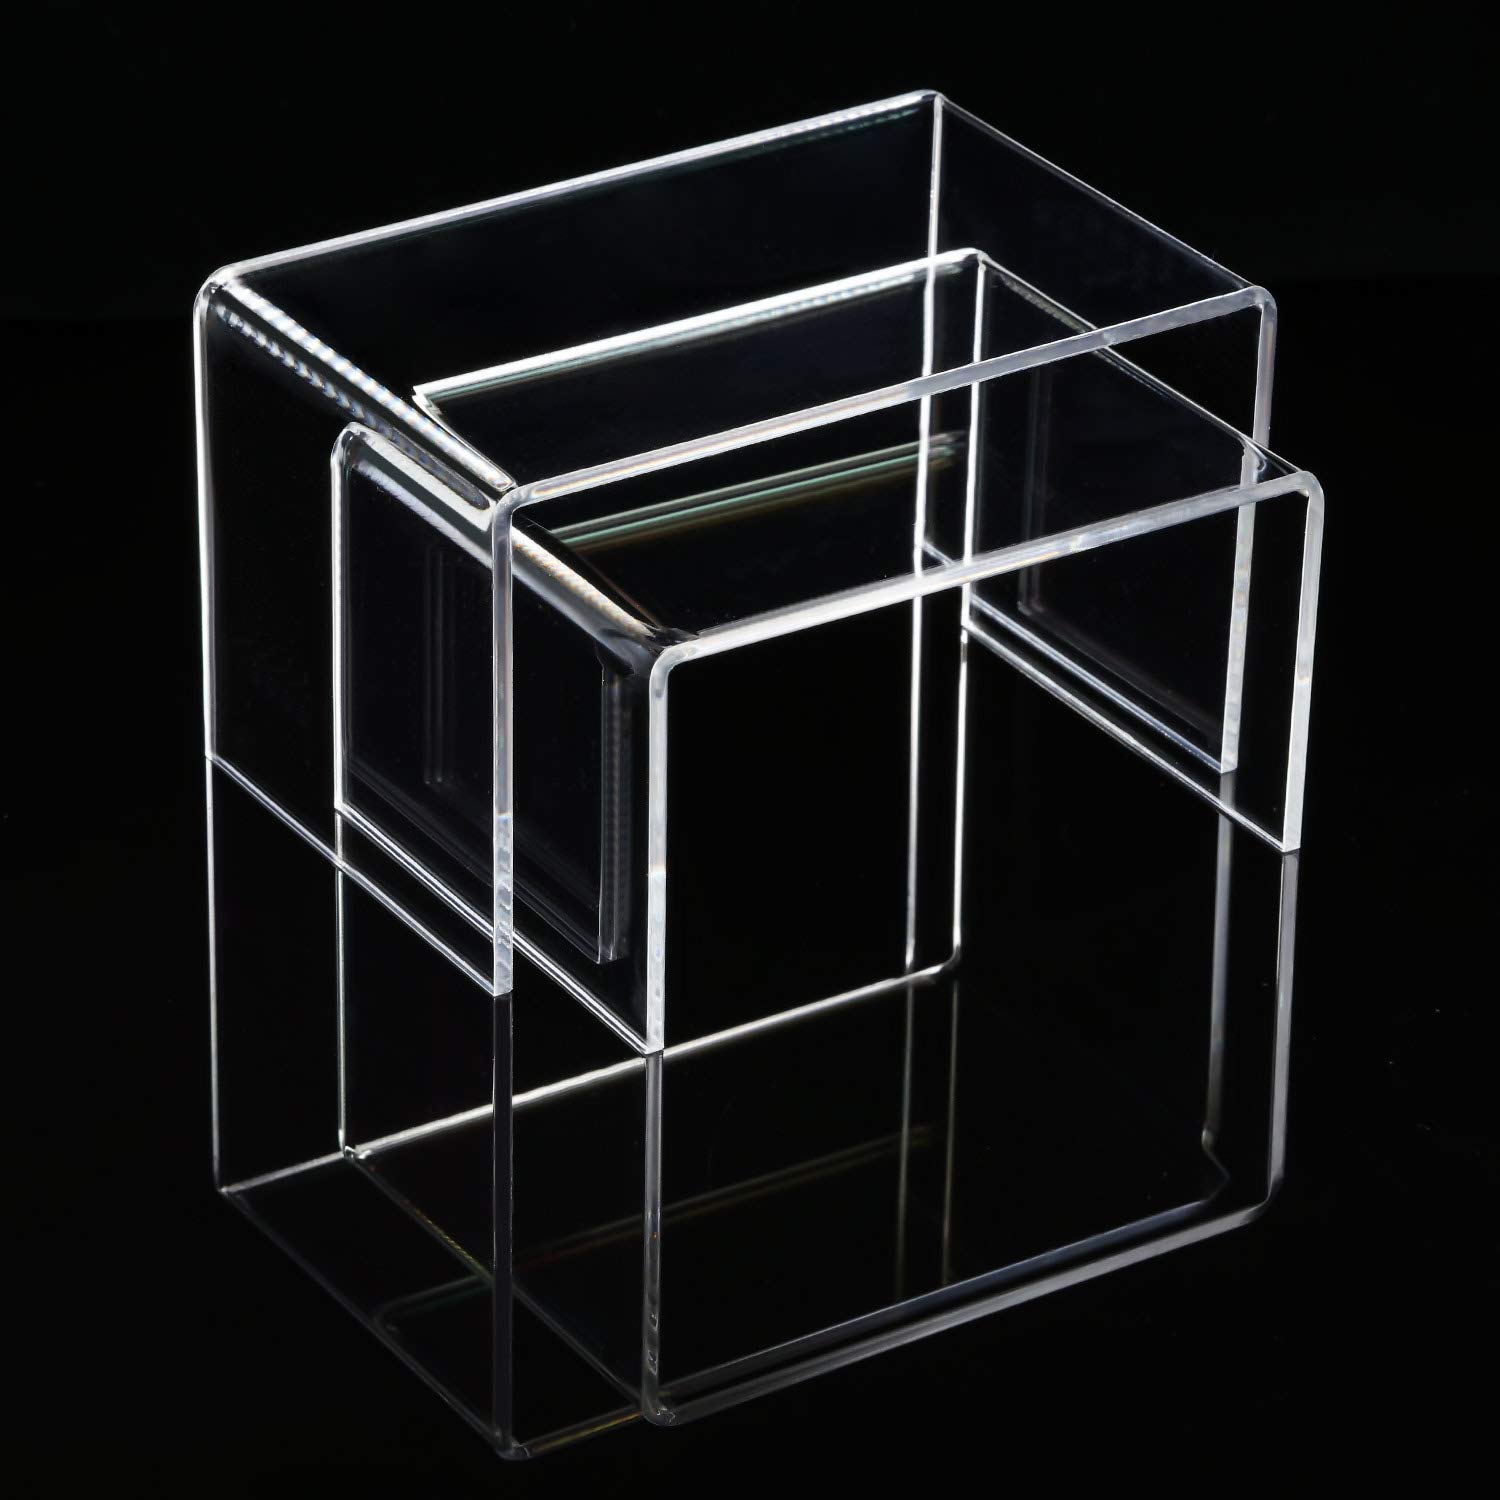 Chuangdi 4 Pieces Clear Acrylic Display Risers, Jewelry Display Risers Showcase Fixtures, Tear Off The Protective Film Before Use (4.1 Inch and 5 Inch) by Chuangdi (Image #4)